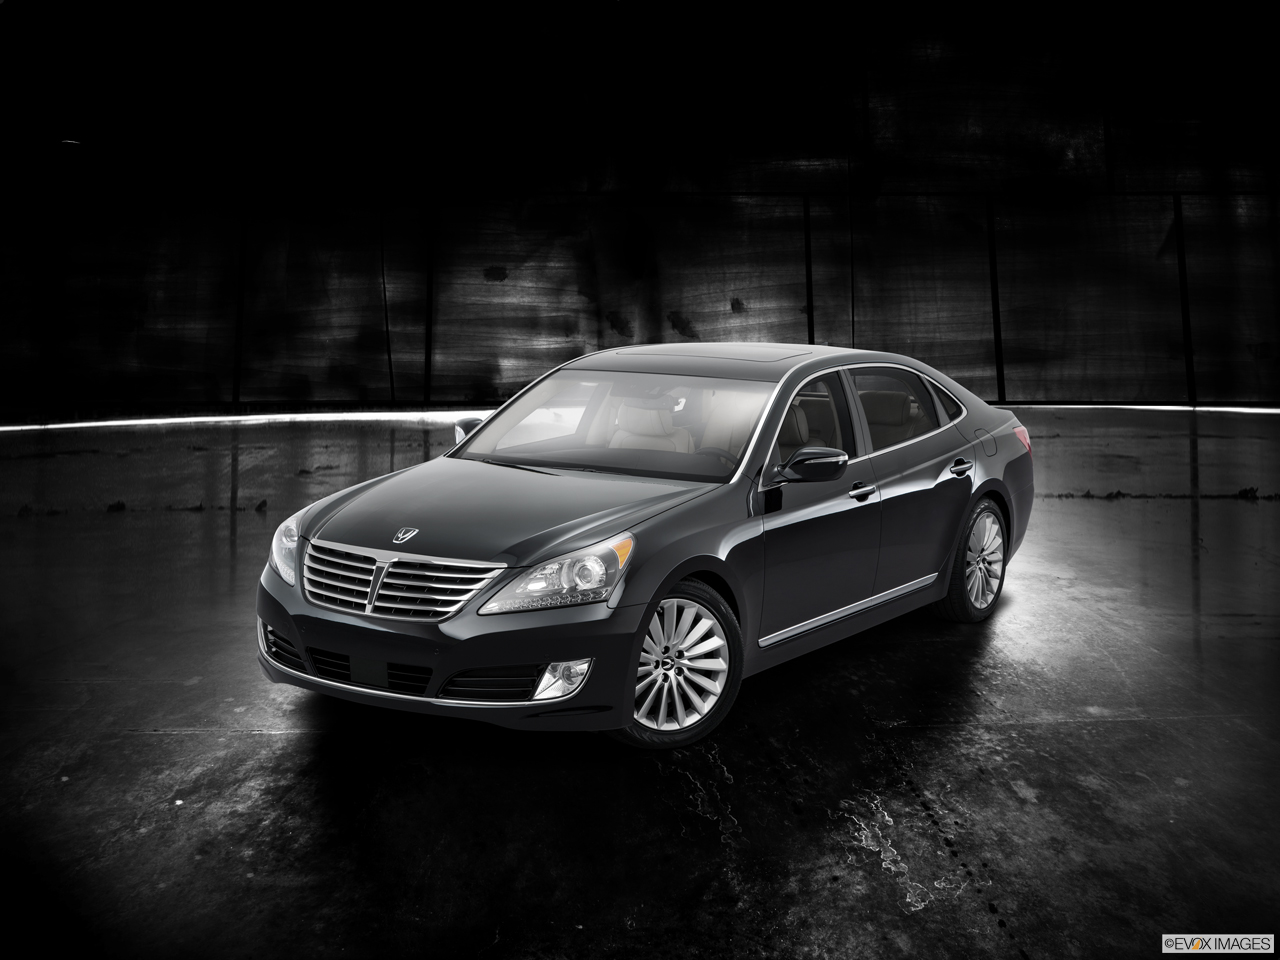 Exterior View Of 2016 Hyundai Equus in Tracy